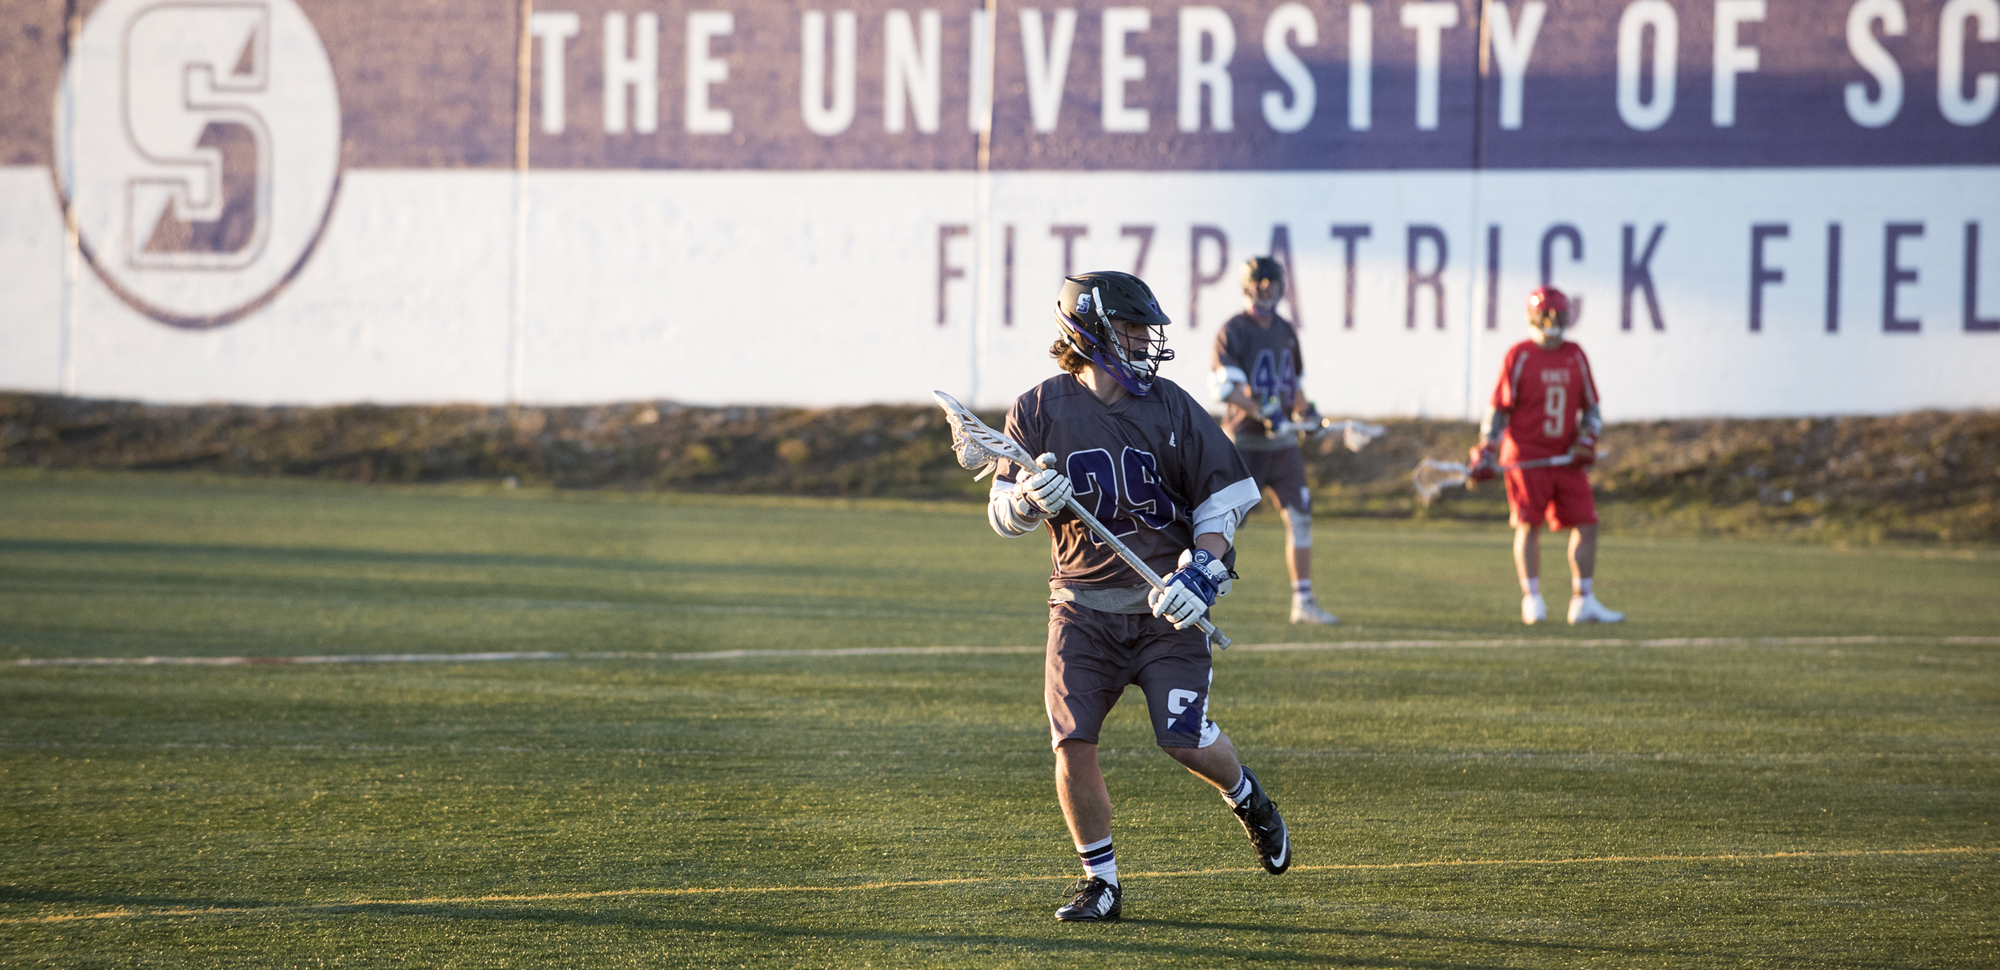 Men's Lacrosse To Host I.D. Clinic On December 2